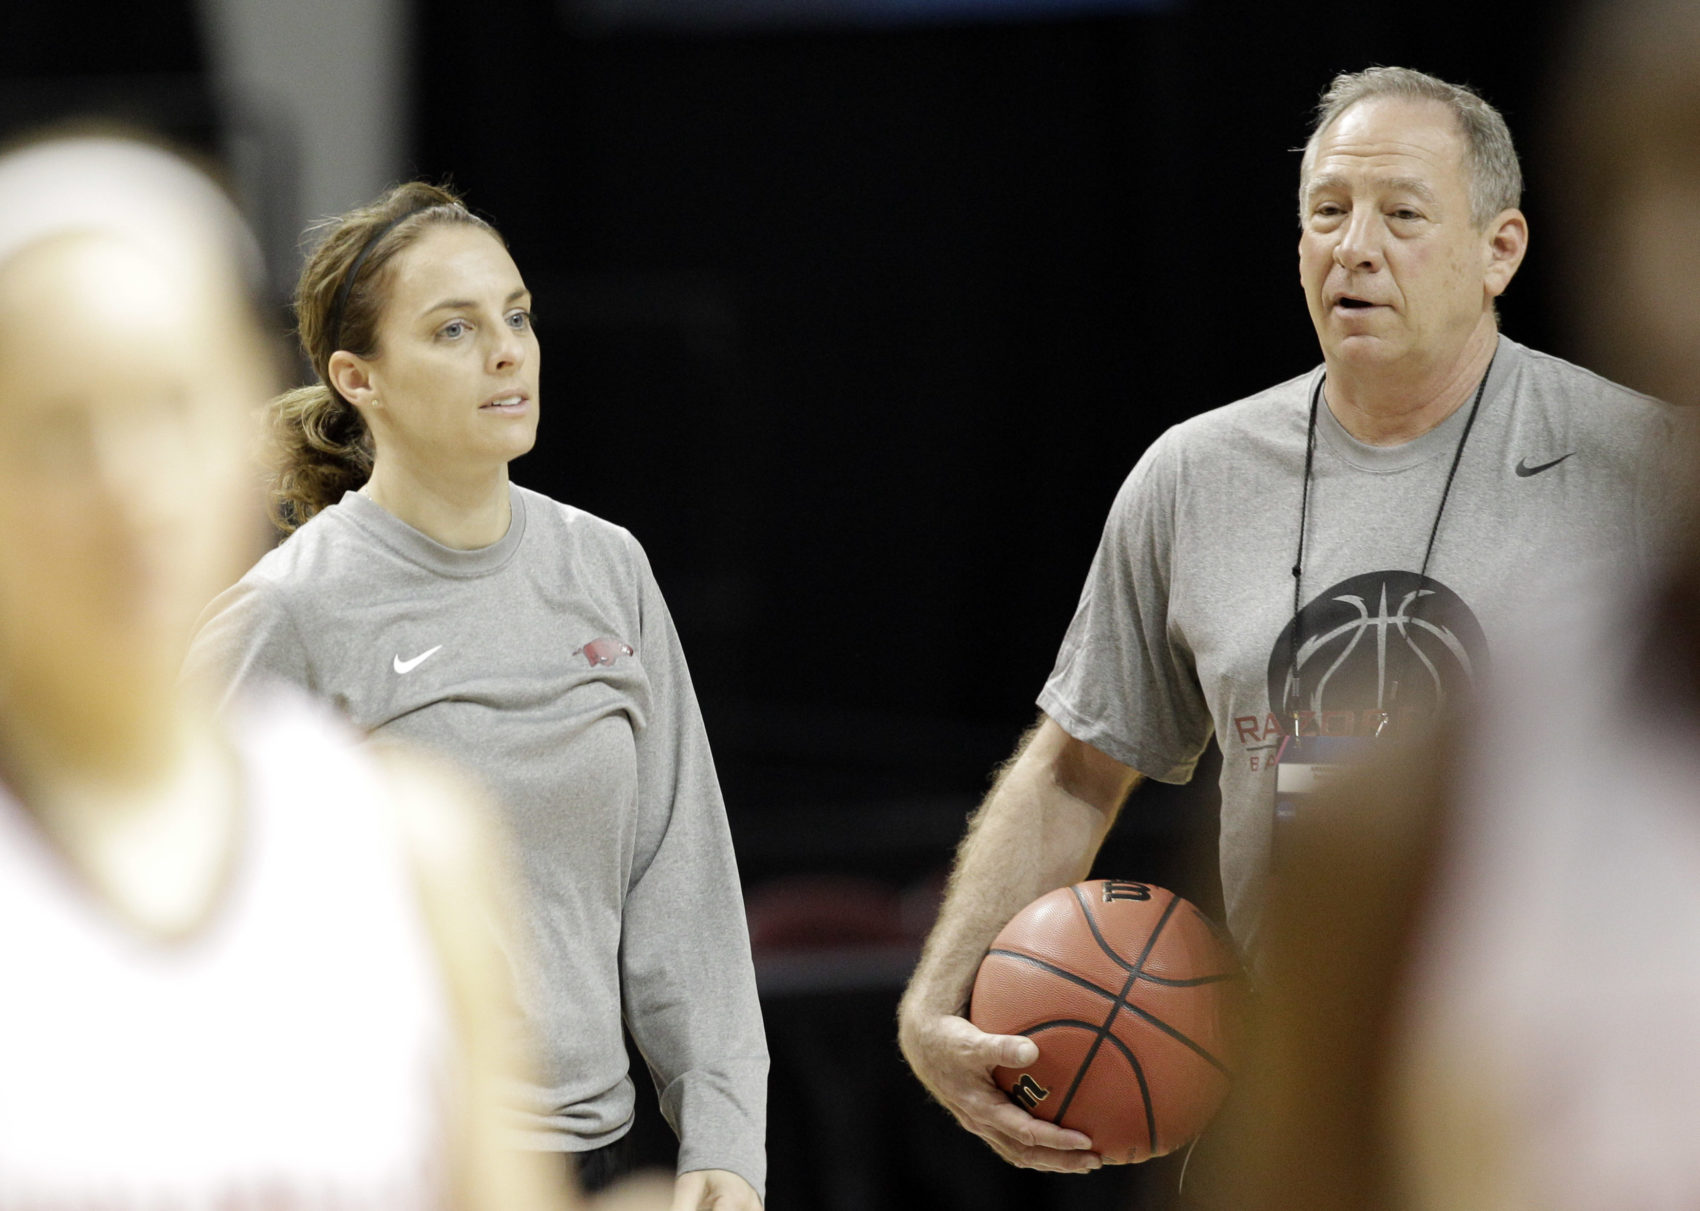 Tom and Nicki coaching together at the University of Arkansas. (David J. Phillip/AP)